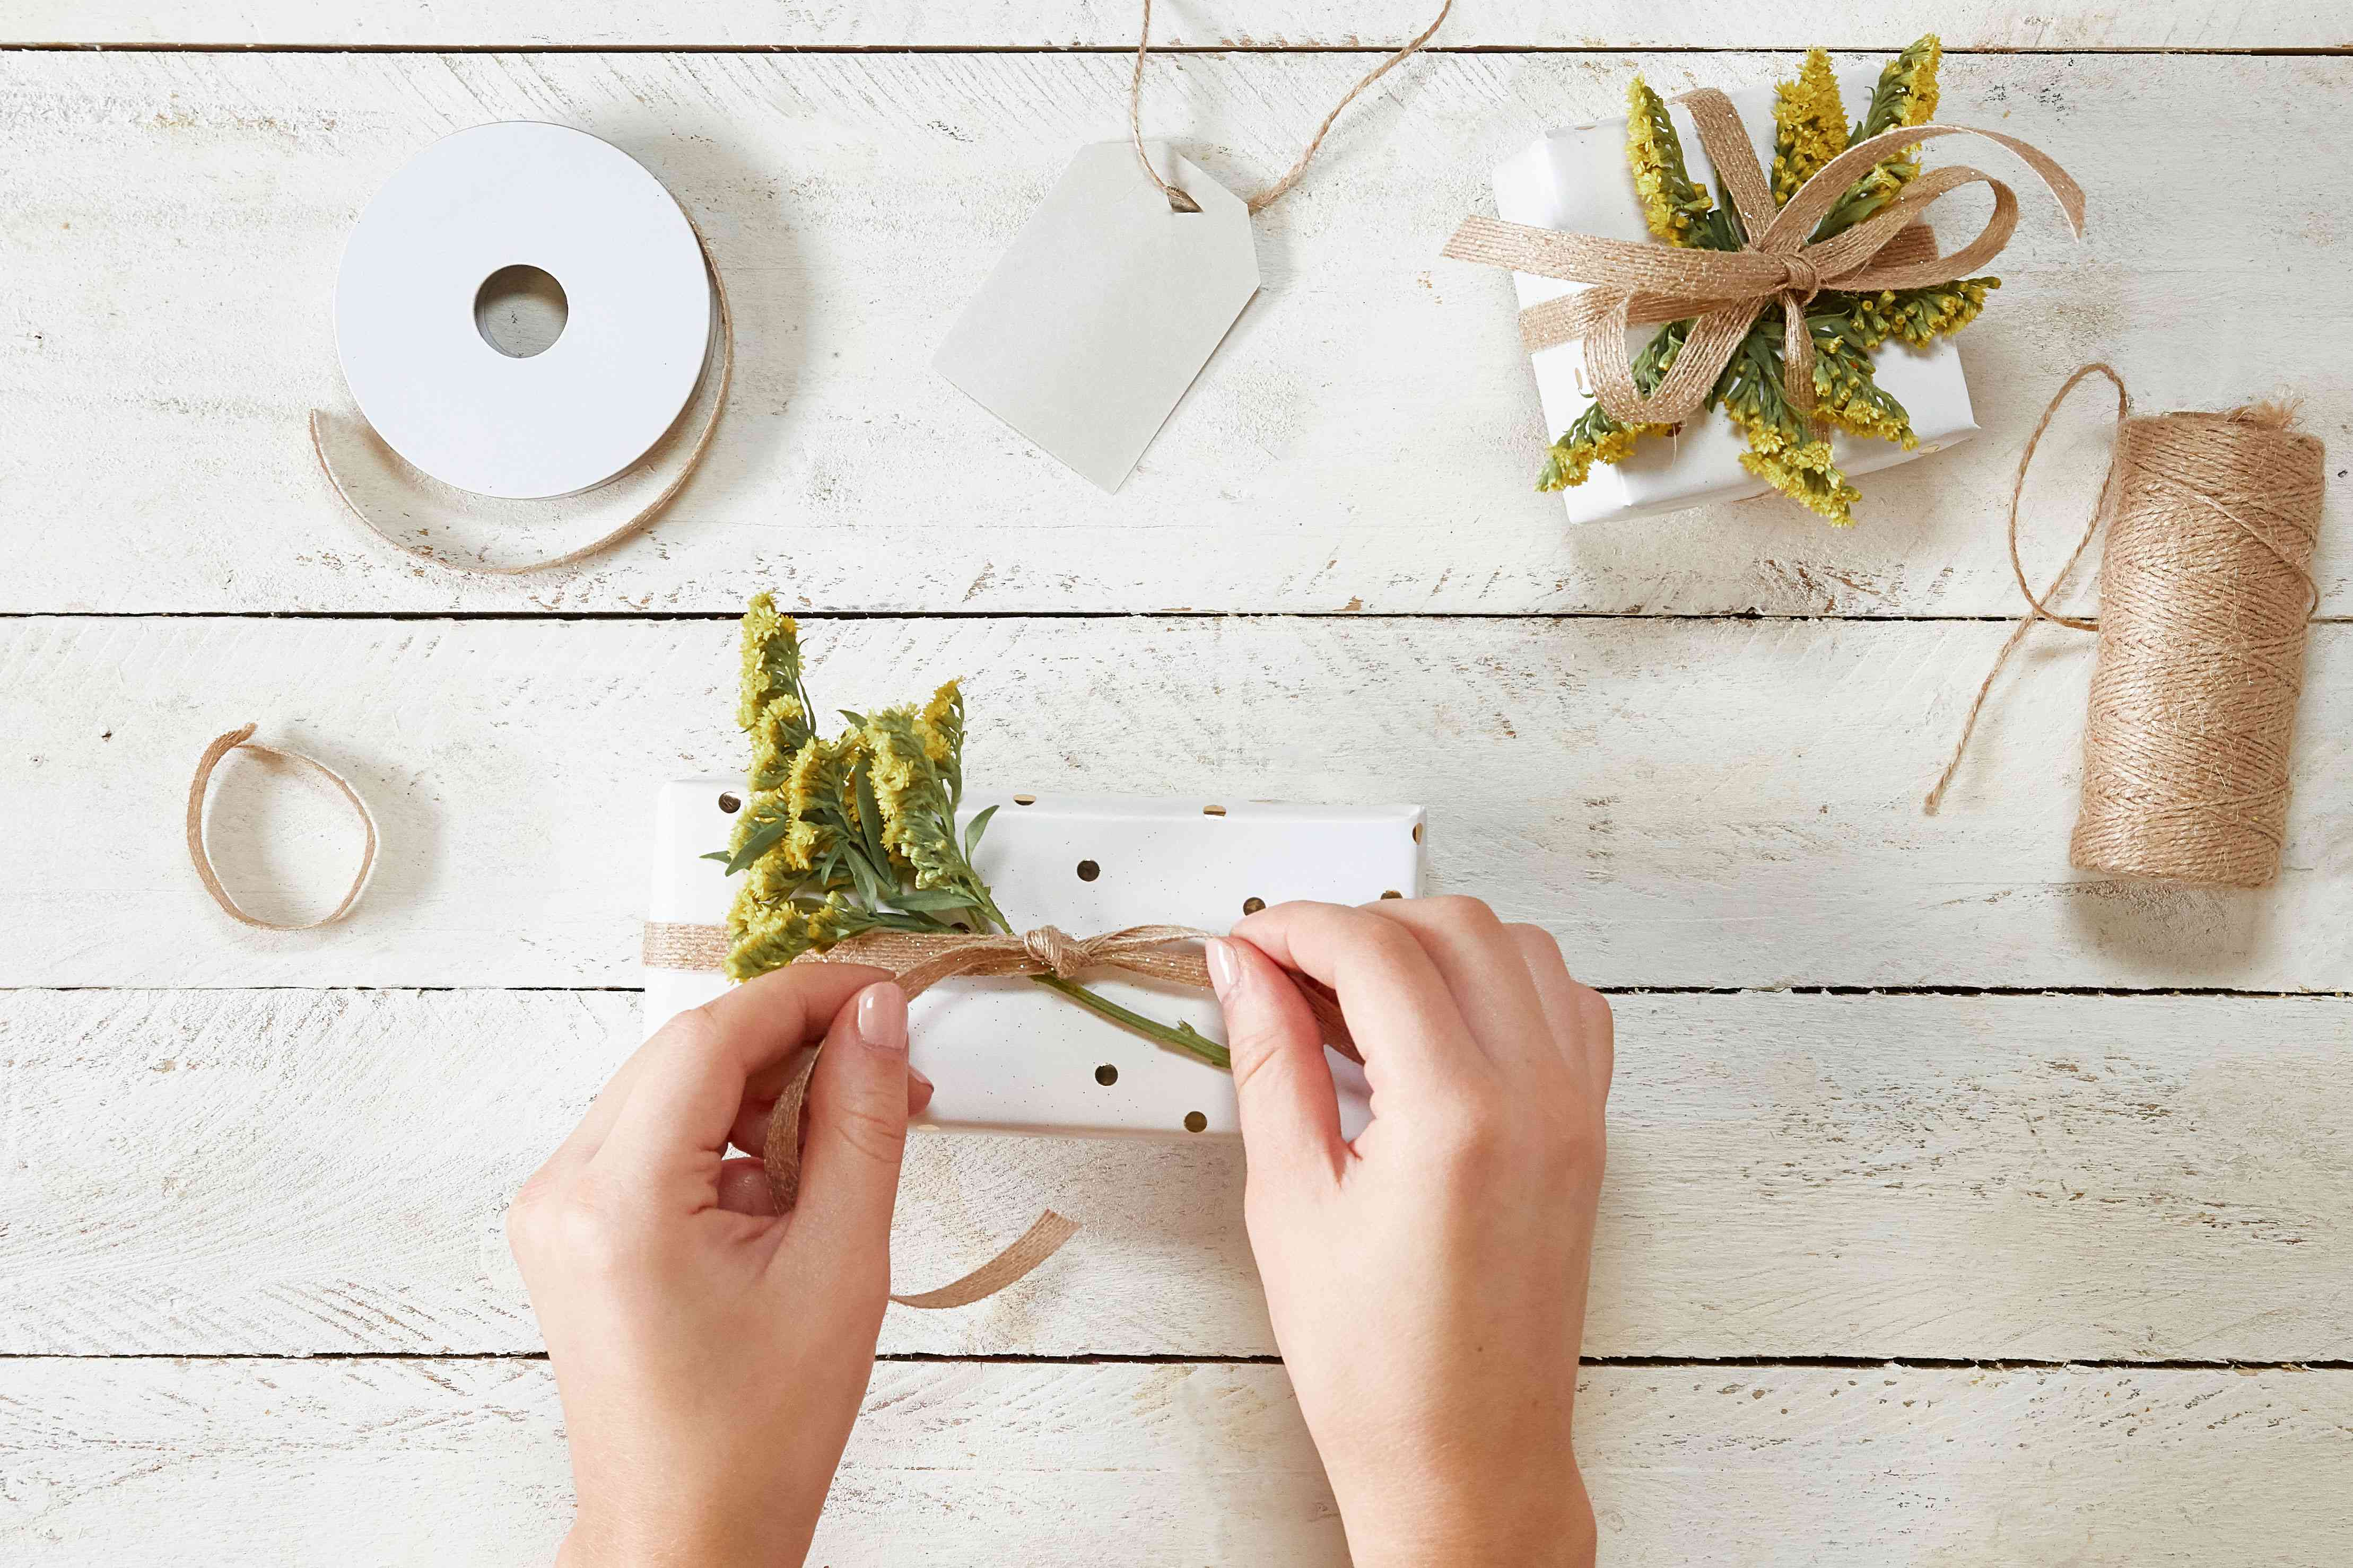 Woman's hands tying herb on present top